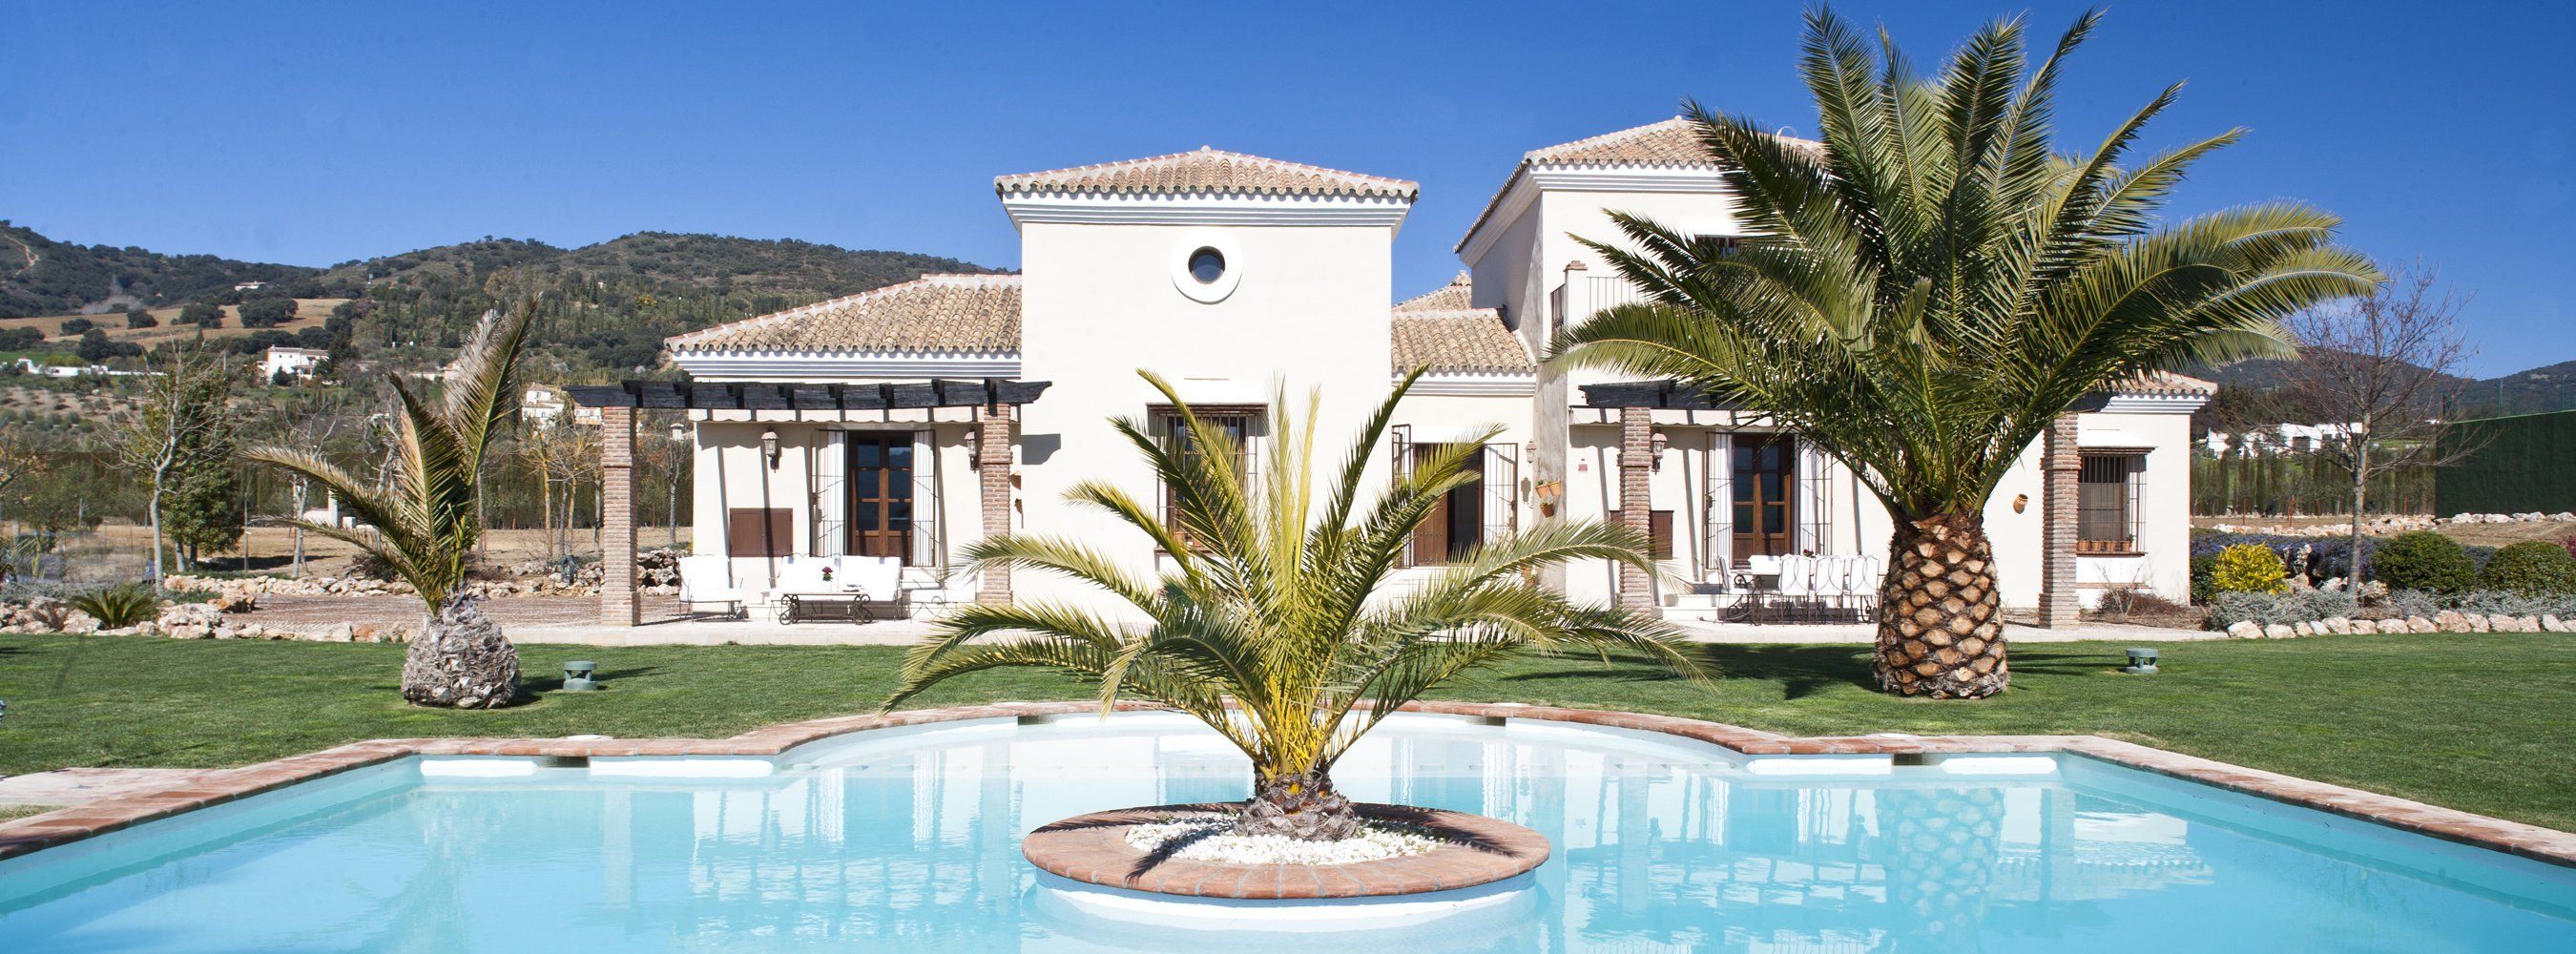 luxury villa and pool ronda